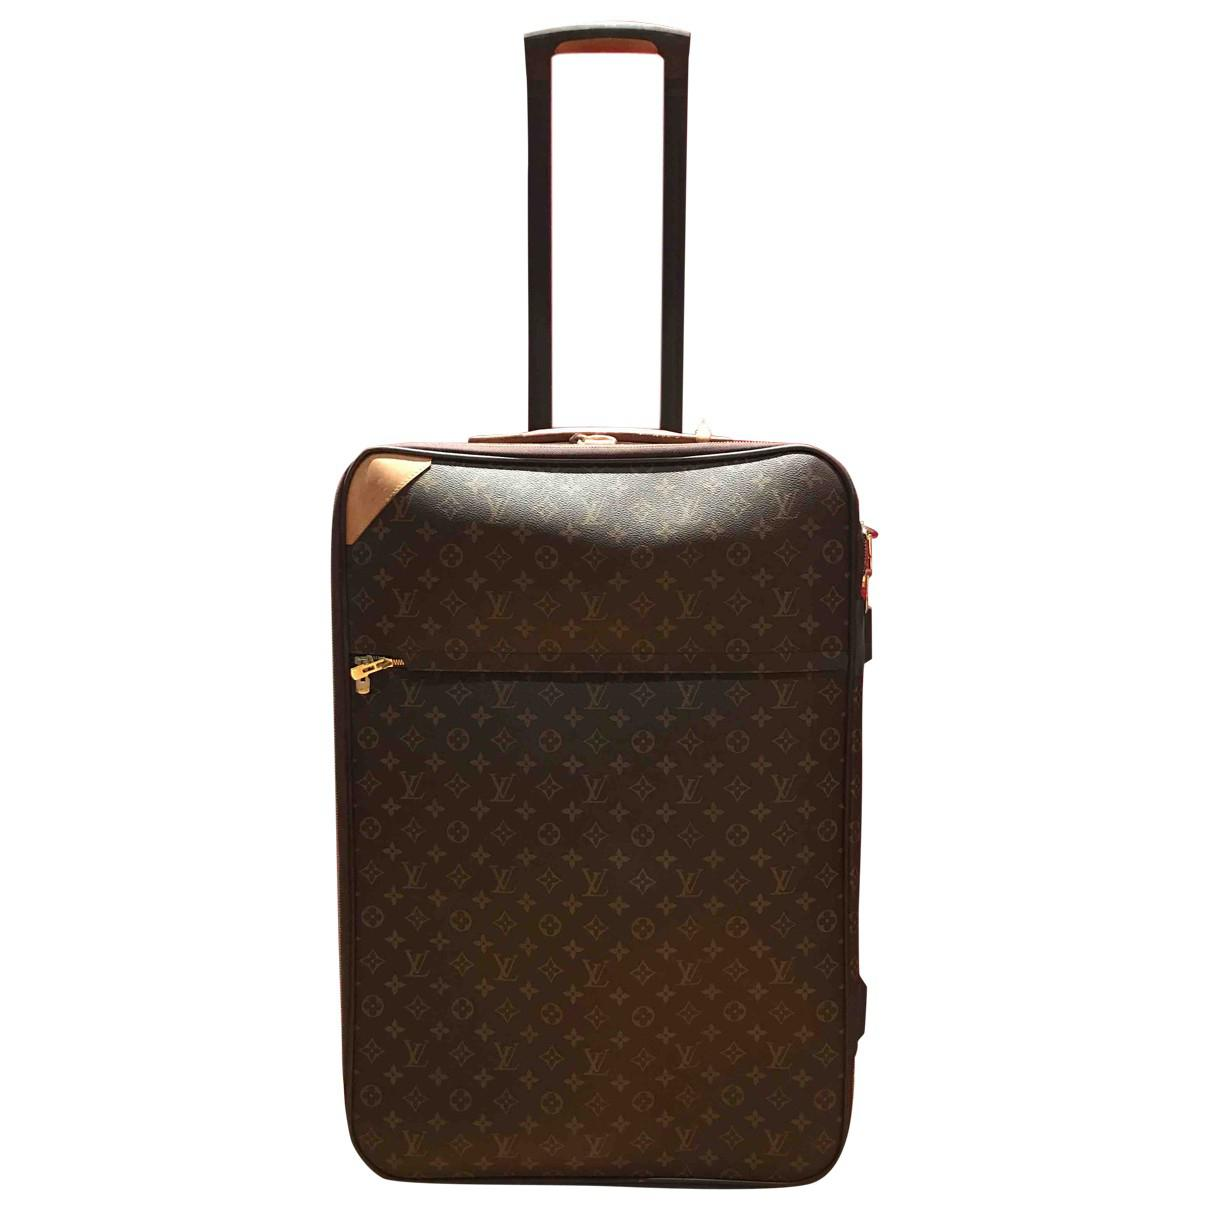 Pre-owned - Pegase leather travel bag Louis Vuitton hQ18oFFh7